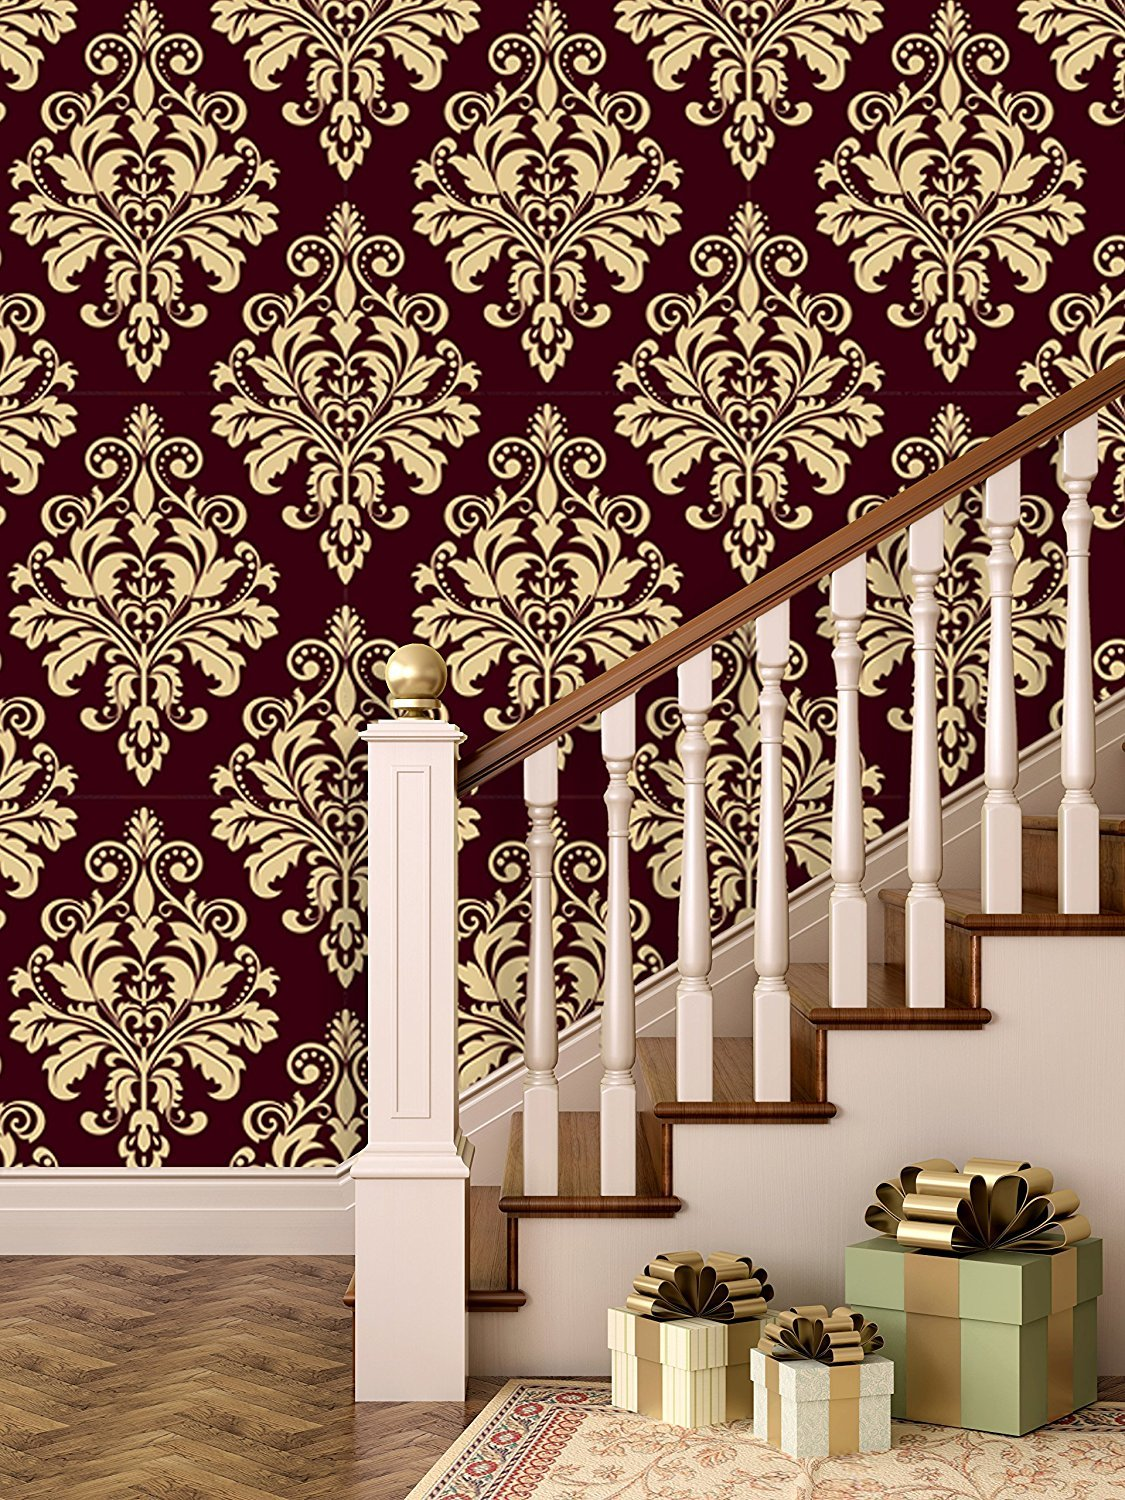 Paper Plane Design Brick Wallpapers For Wall Large Roll 45 Sqft